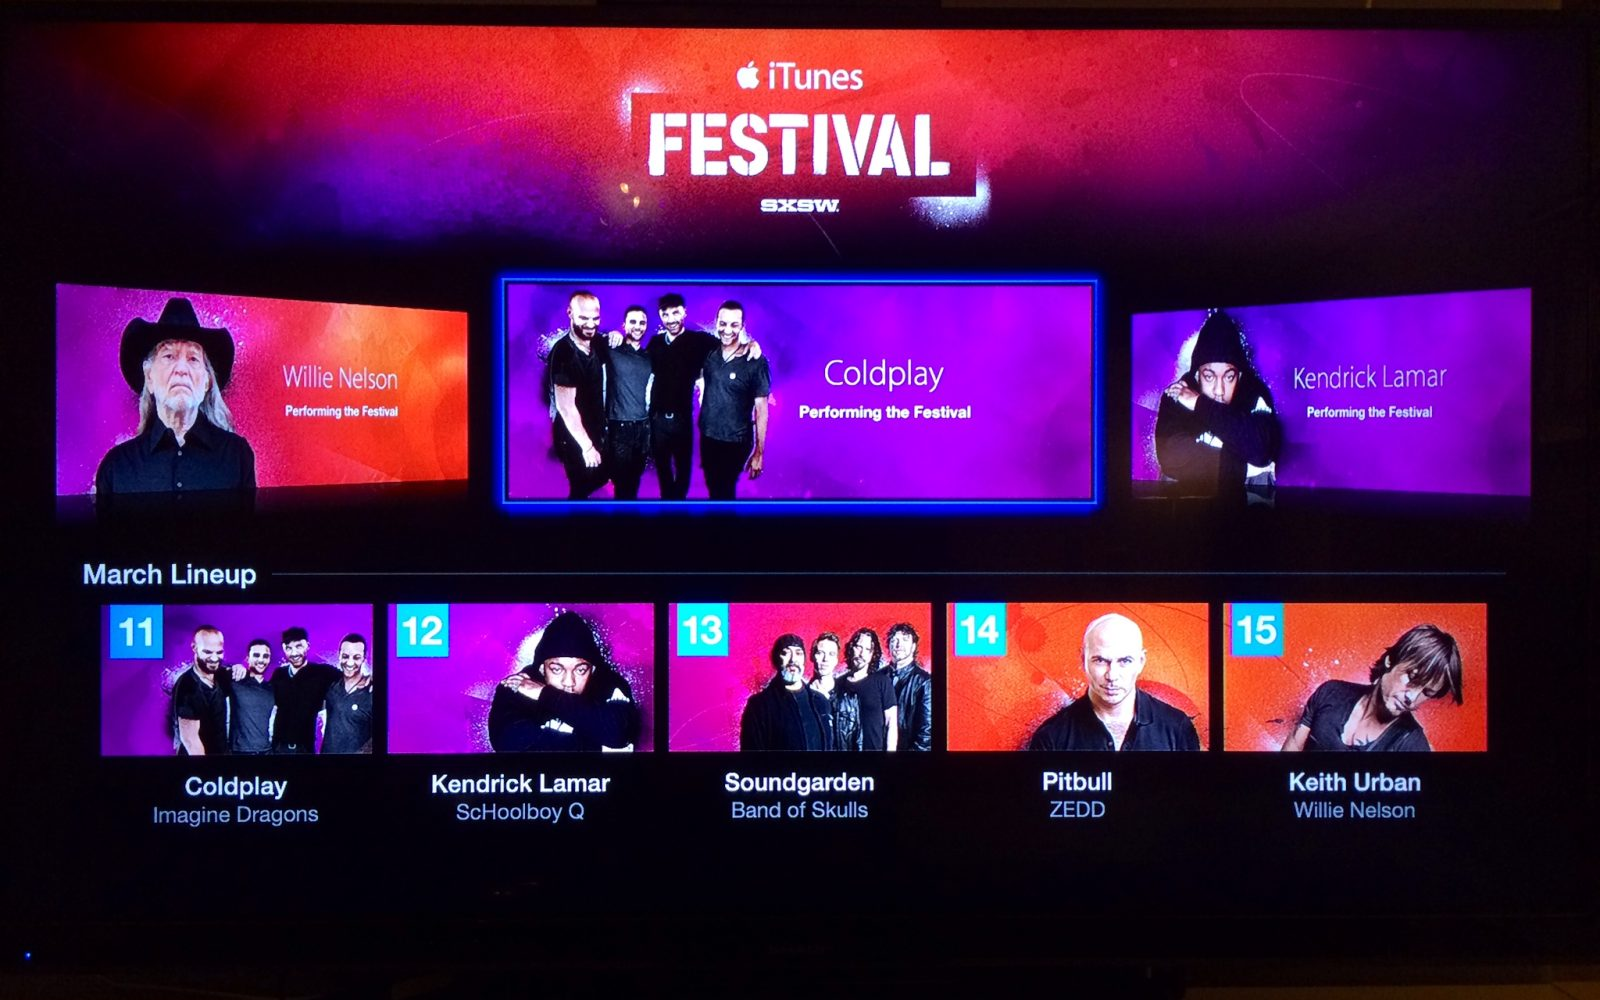 iTunes Festival channel shows up on Apple TV ahead of SXSW